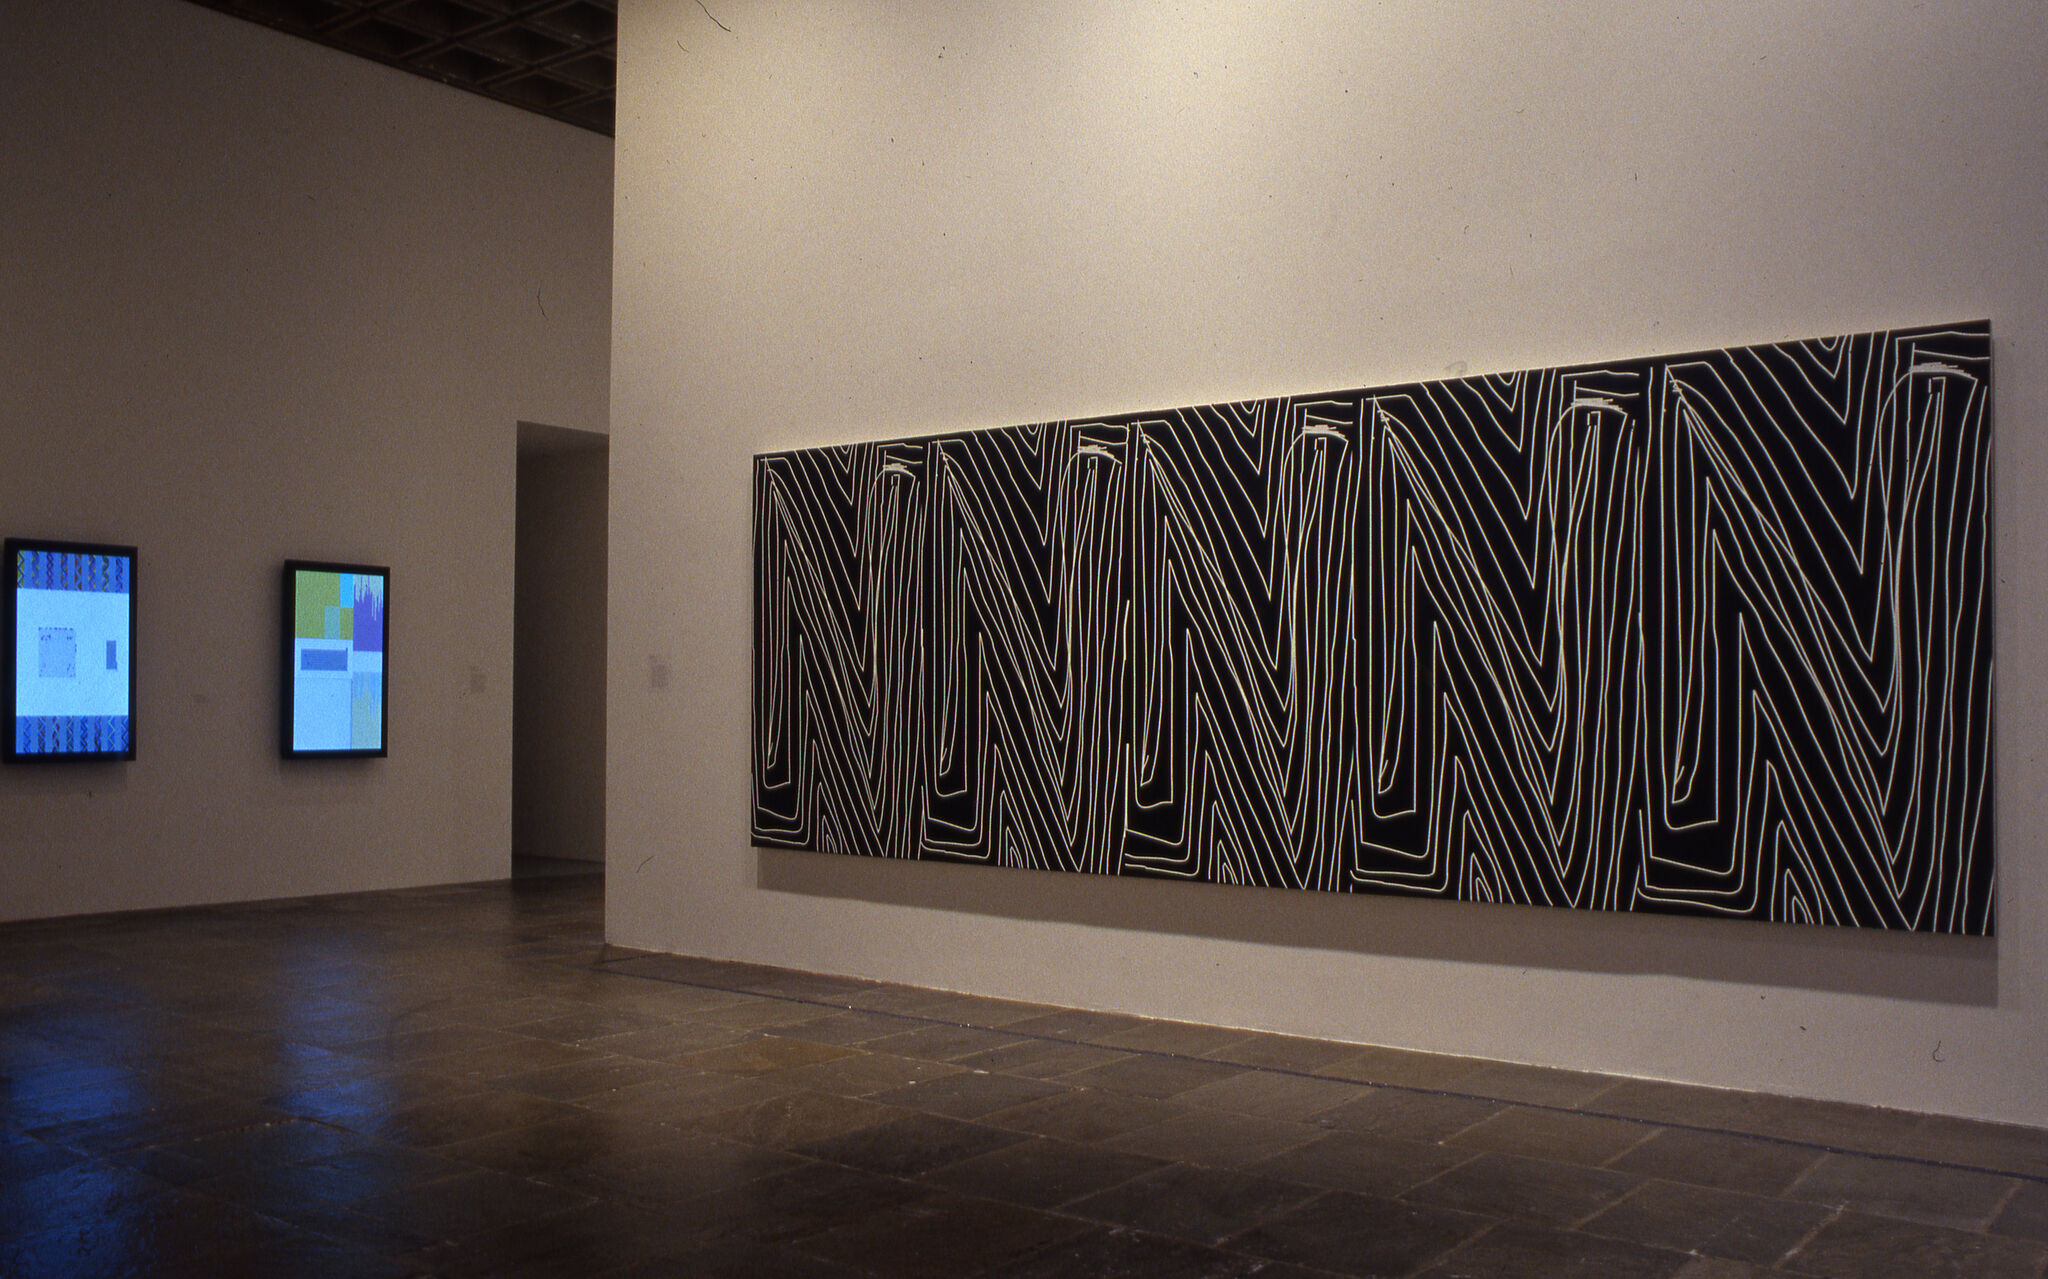 A long and rectangular black and white work of art displayed in a gallery.